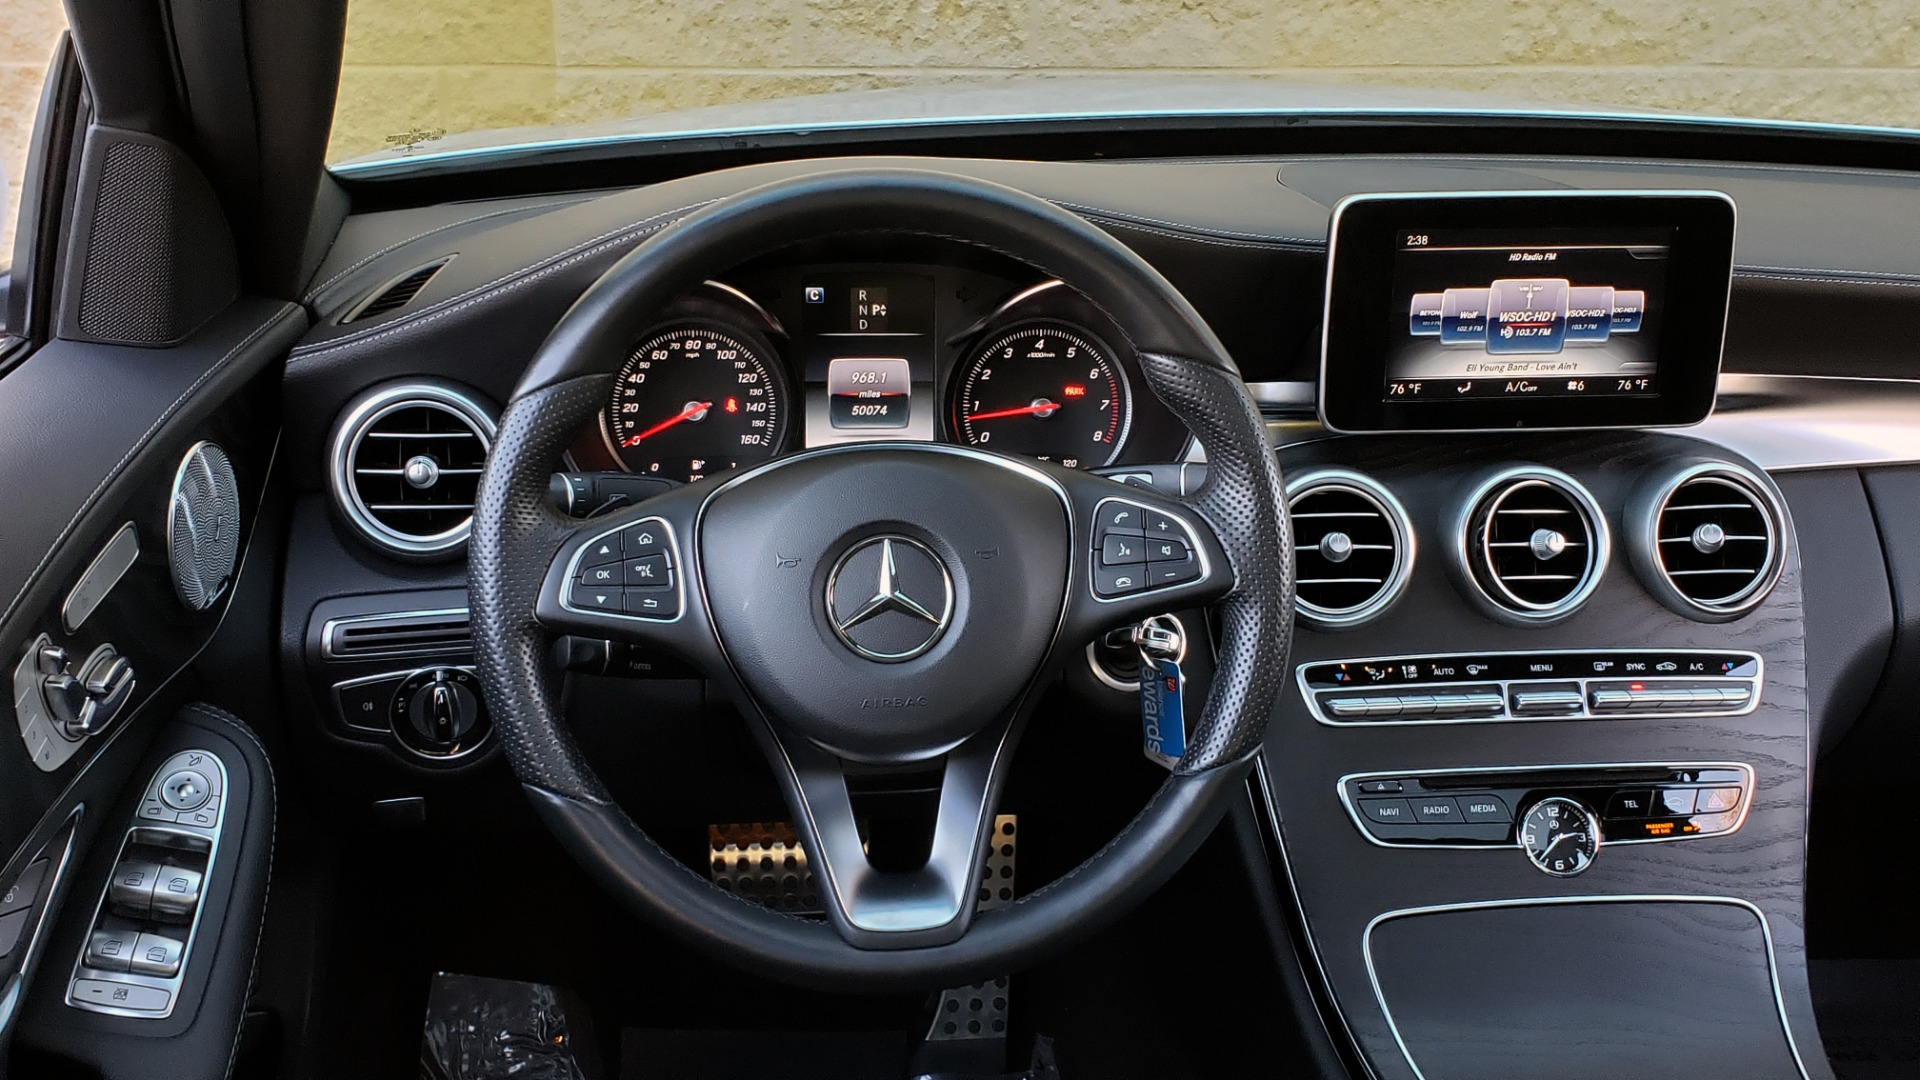 Used 2017 Mercedes-Benz C-CLASS C 300 SPORT / PREM PKG / PANO-ROOF / NAV / HTD STST / REARVIEW for sale Sold at Formula Imports in Charlotte NC 28227 33